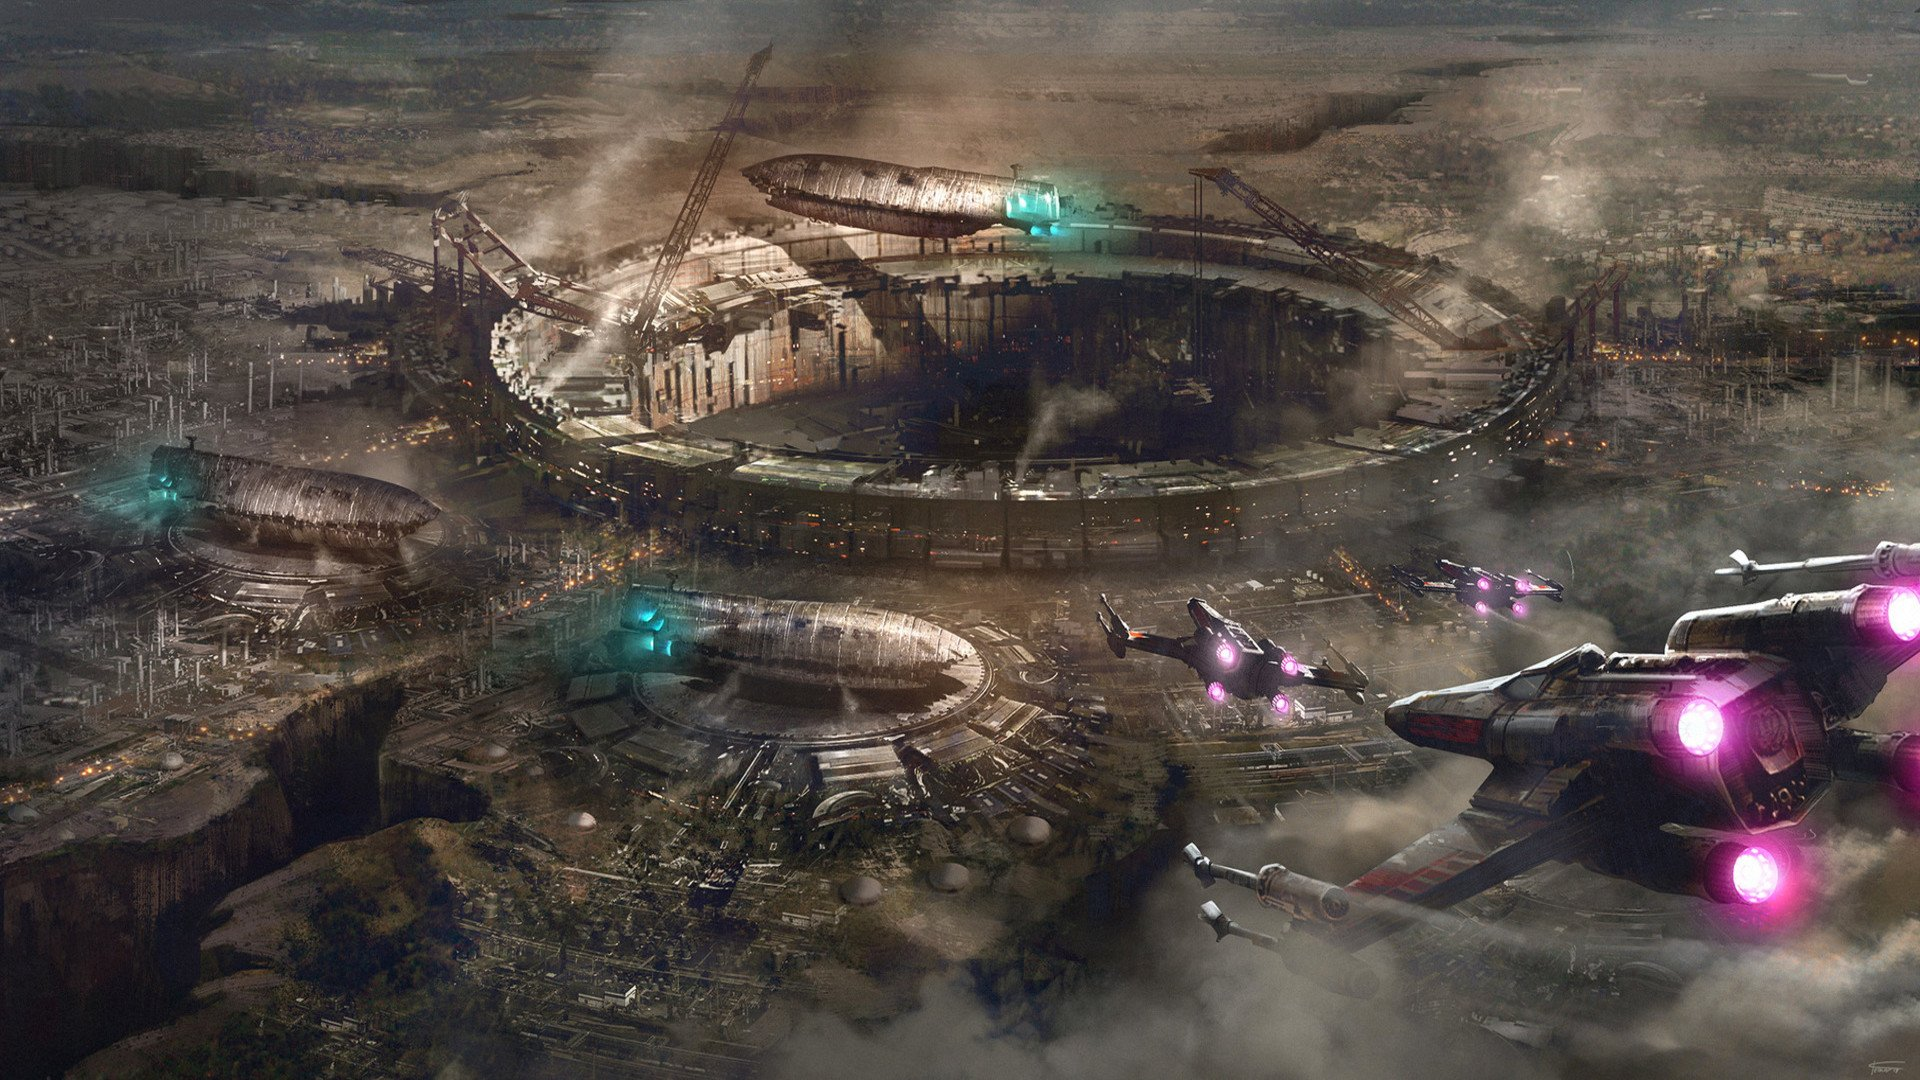 Resistance Base Hd Wallpaper Background Image 1920x1080 Id 1033108 Wallpaper Abyss